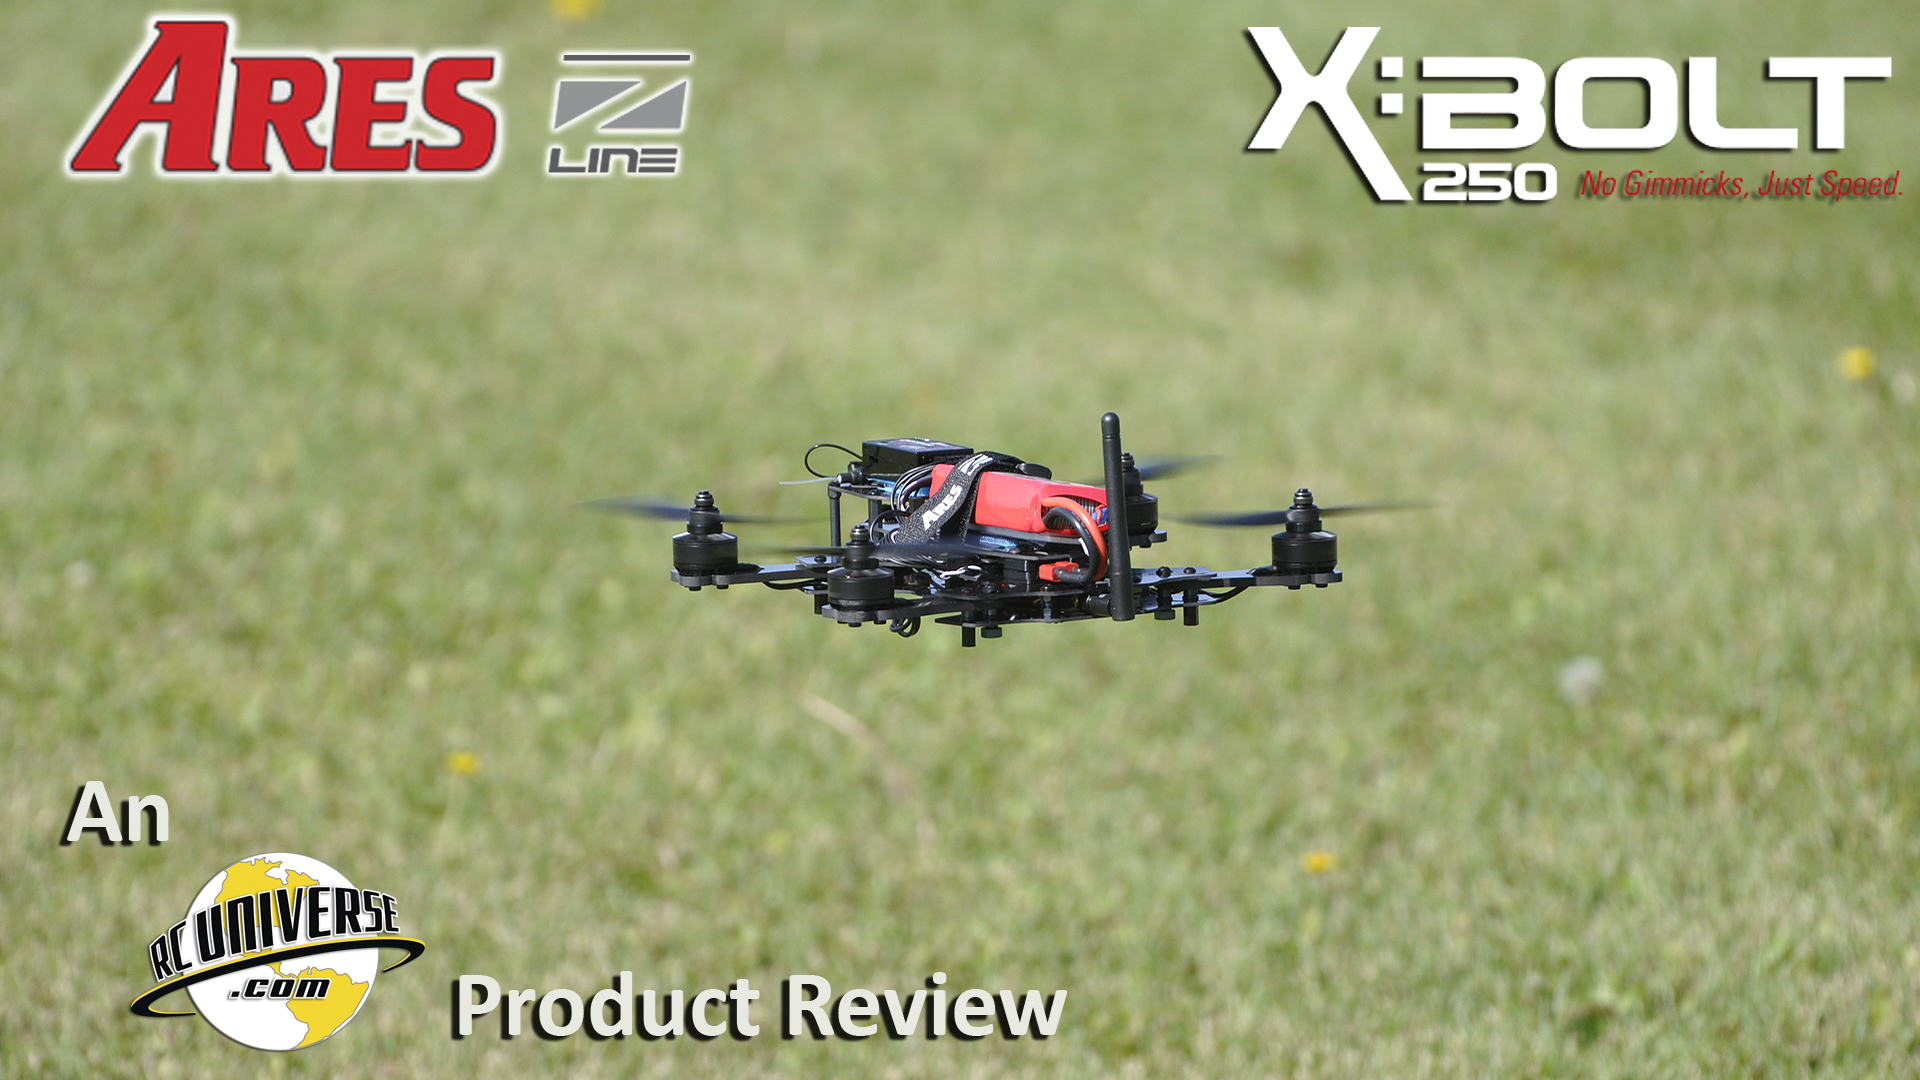 Ares Rc Z Line Xbolt 250 Fpv Racing Quad Wiring Diagram Quadcopter So Youre Into Multi Rotor And Ready To Move Past A Basic What Do You For Fast Responsive Racer Thats